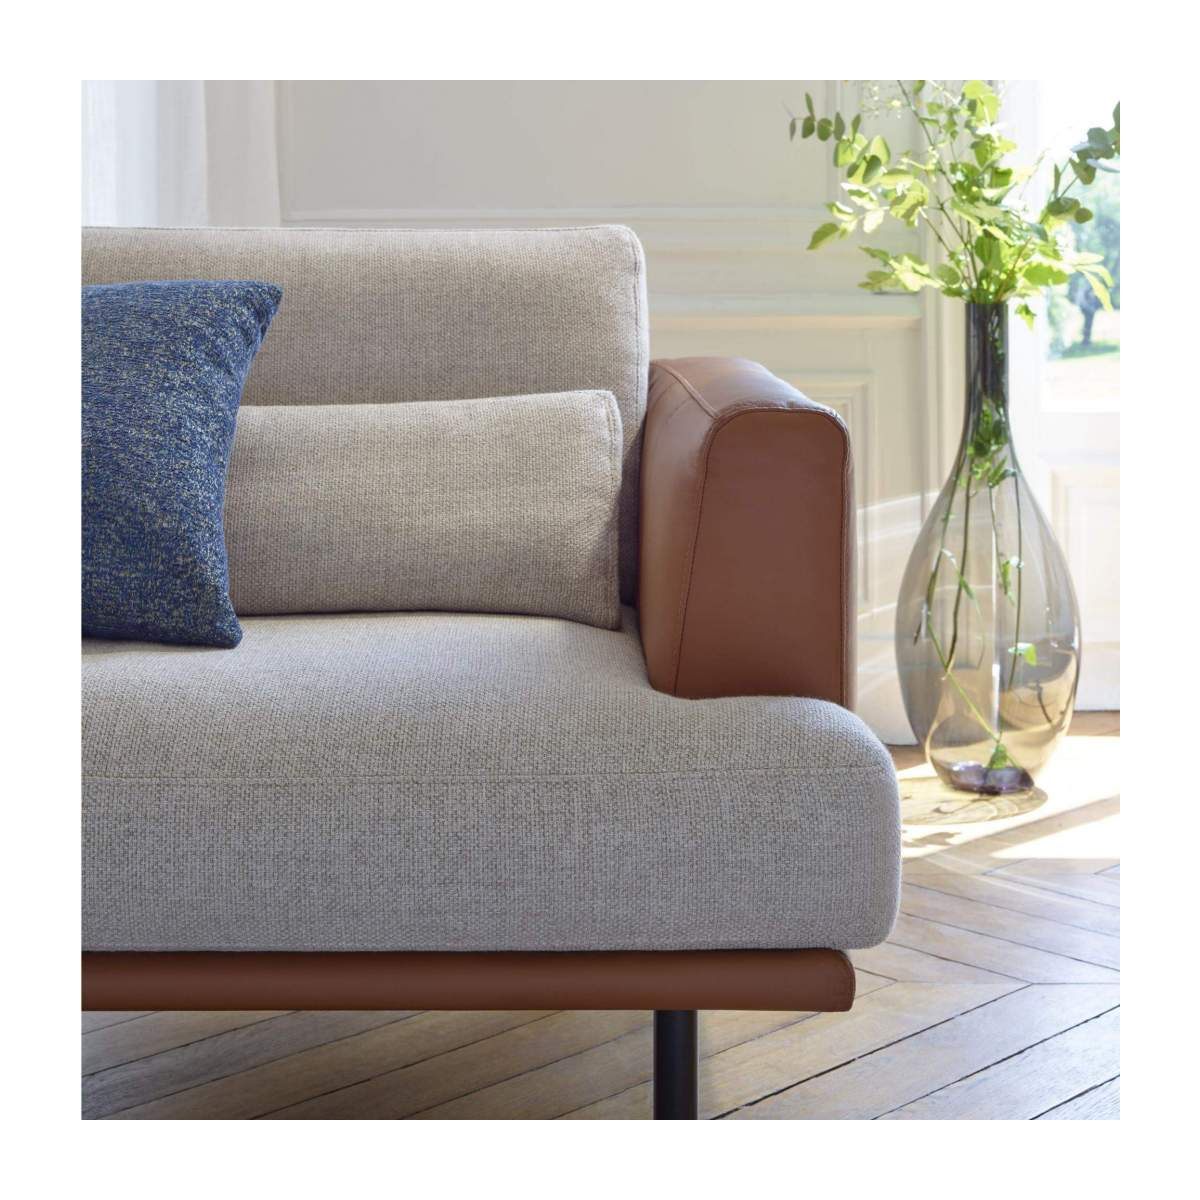 3 seater sofa in Lecce fabric, muscat with base and armrests in brown leather n°6